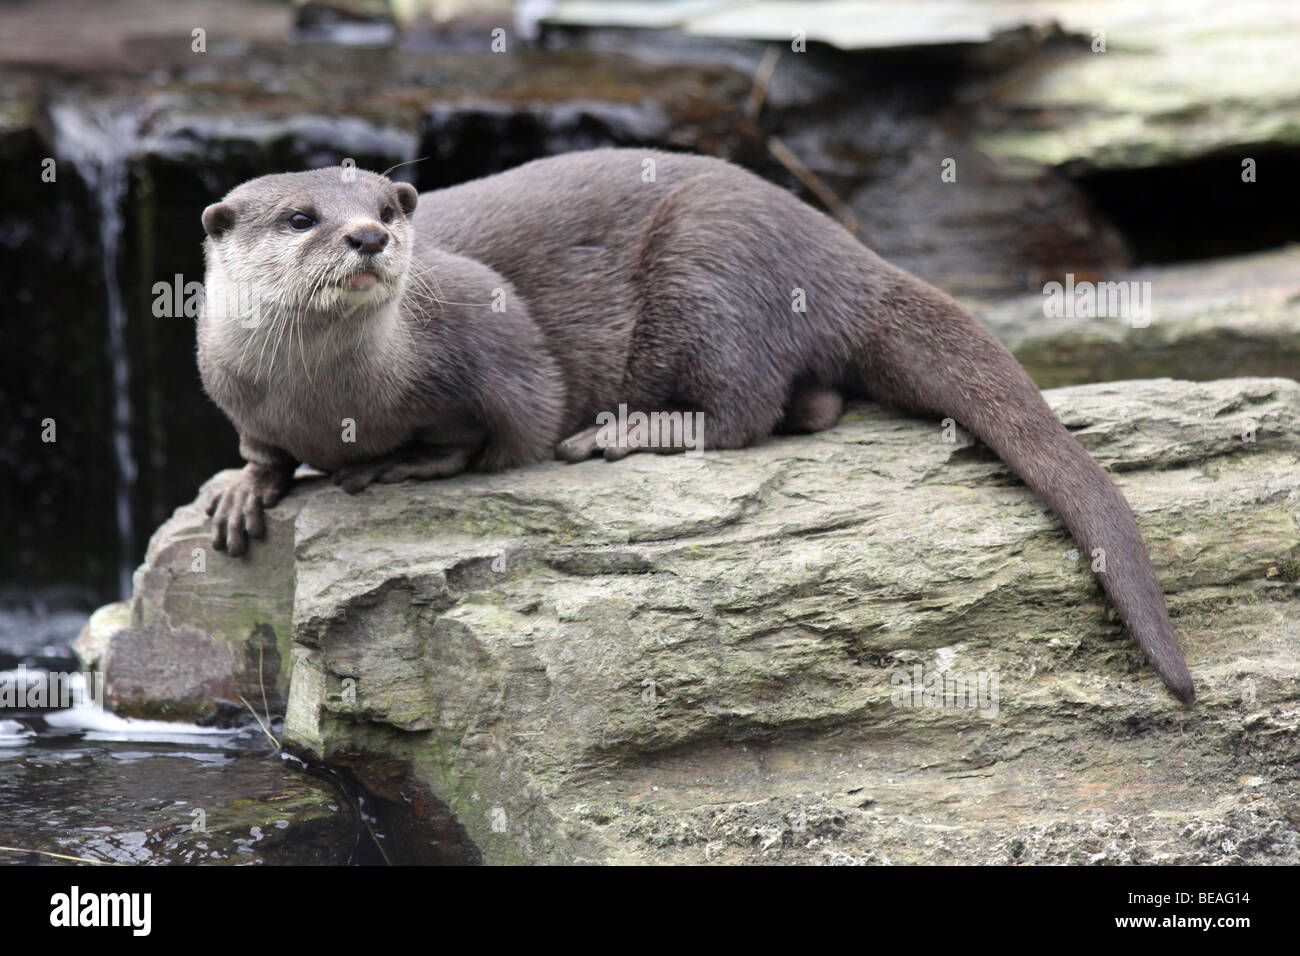 Oriental Small-clawed Otter Aonyx cinerea Taken At Martin Mere WWT, Lancashire UK - Stock Image